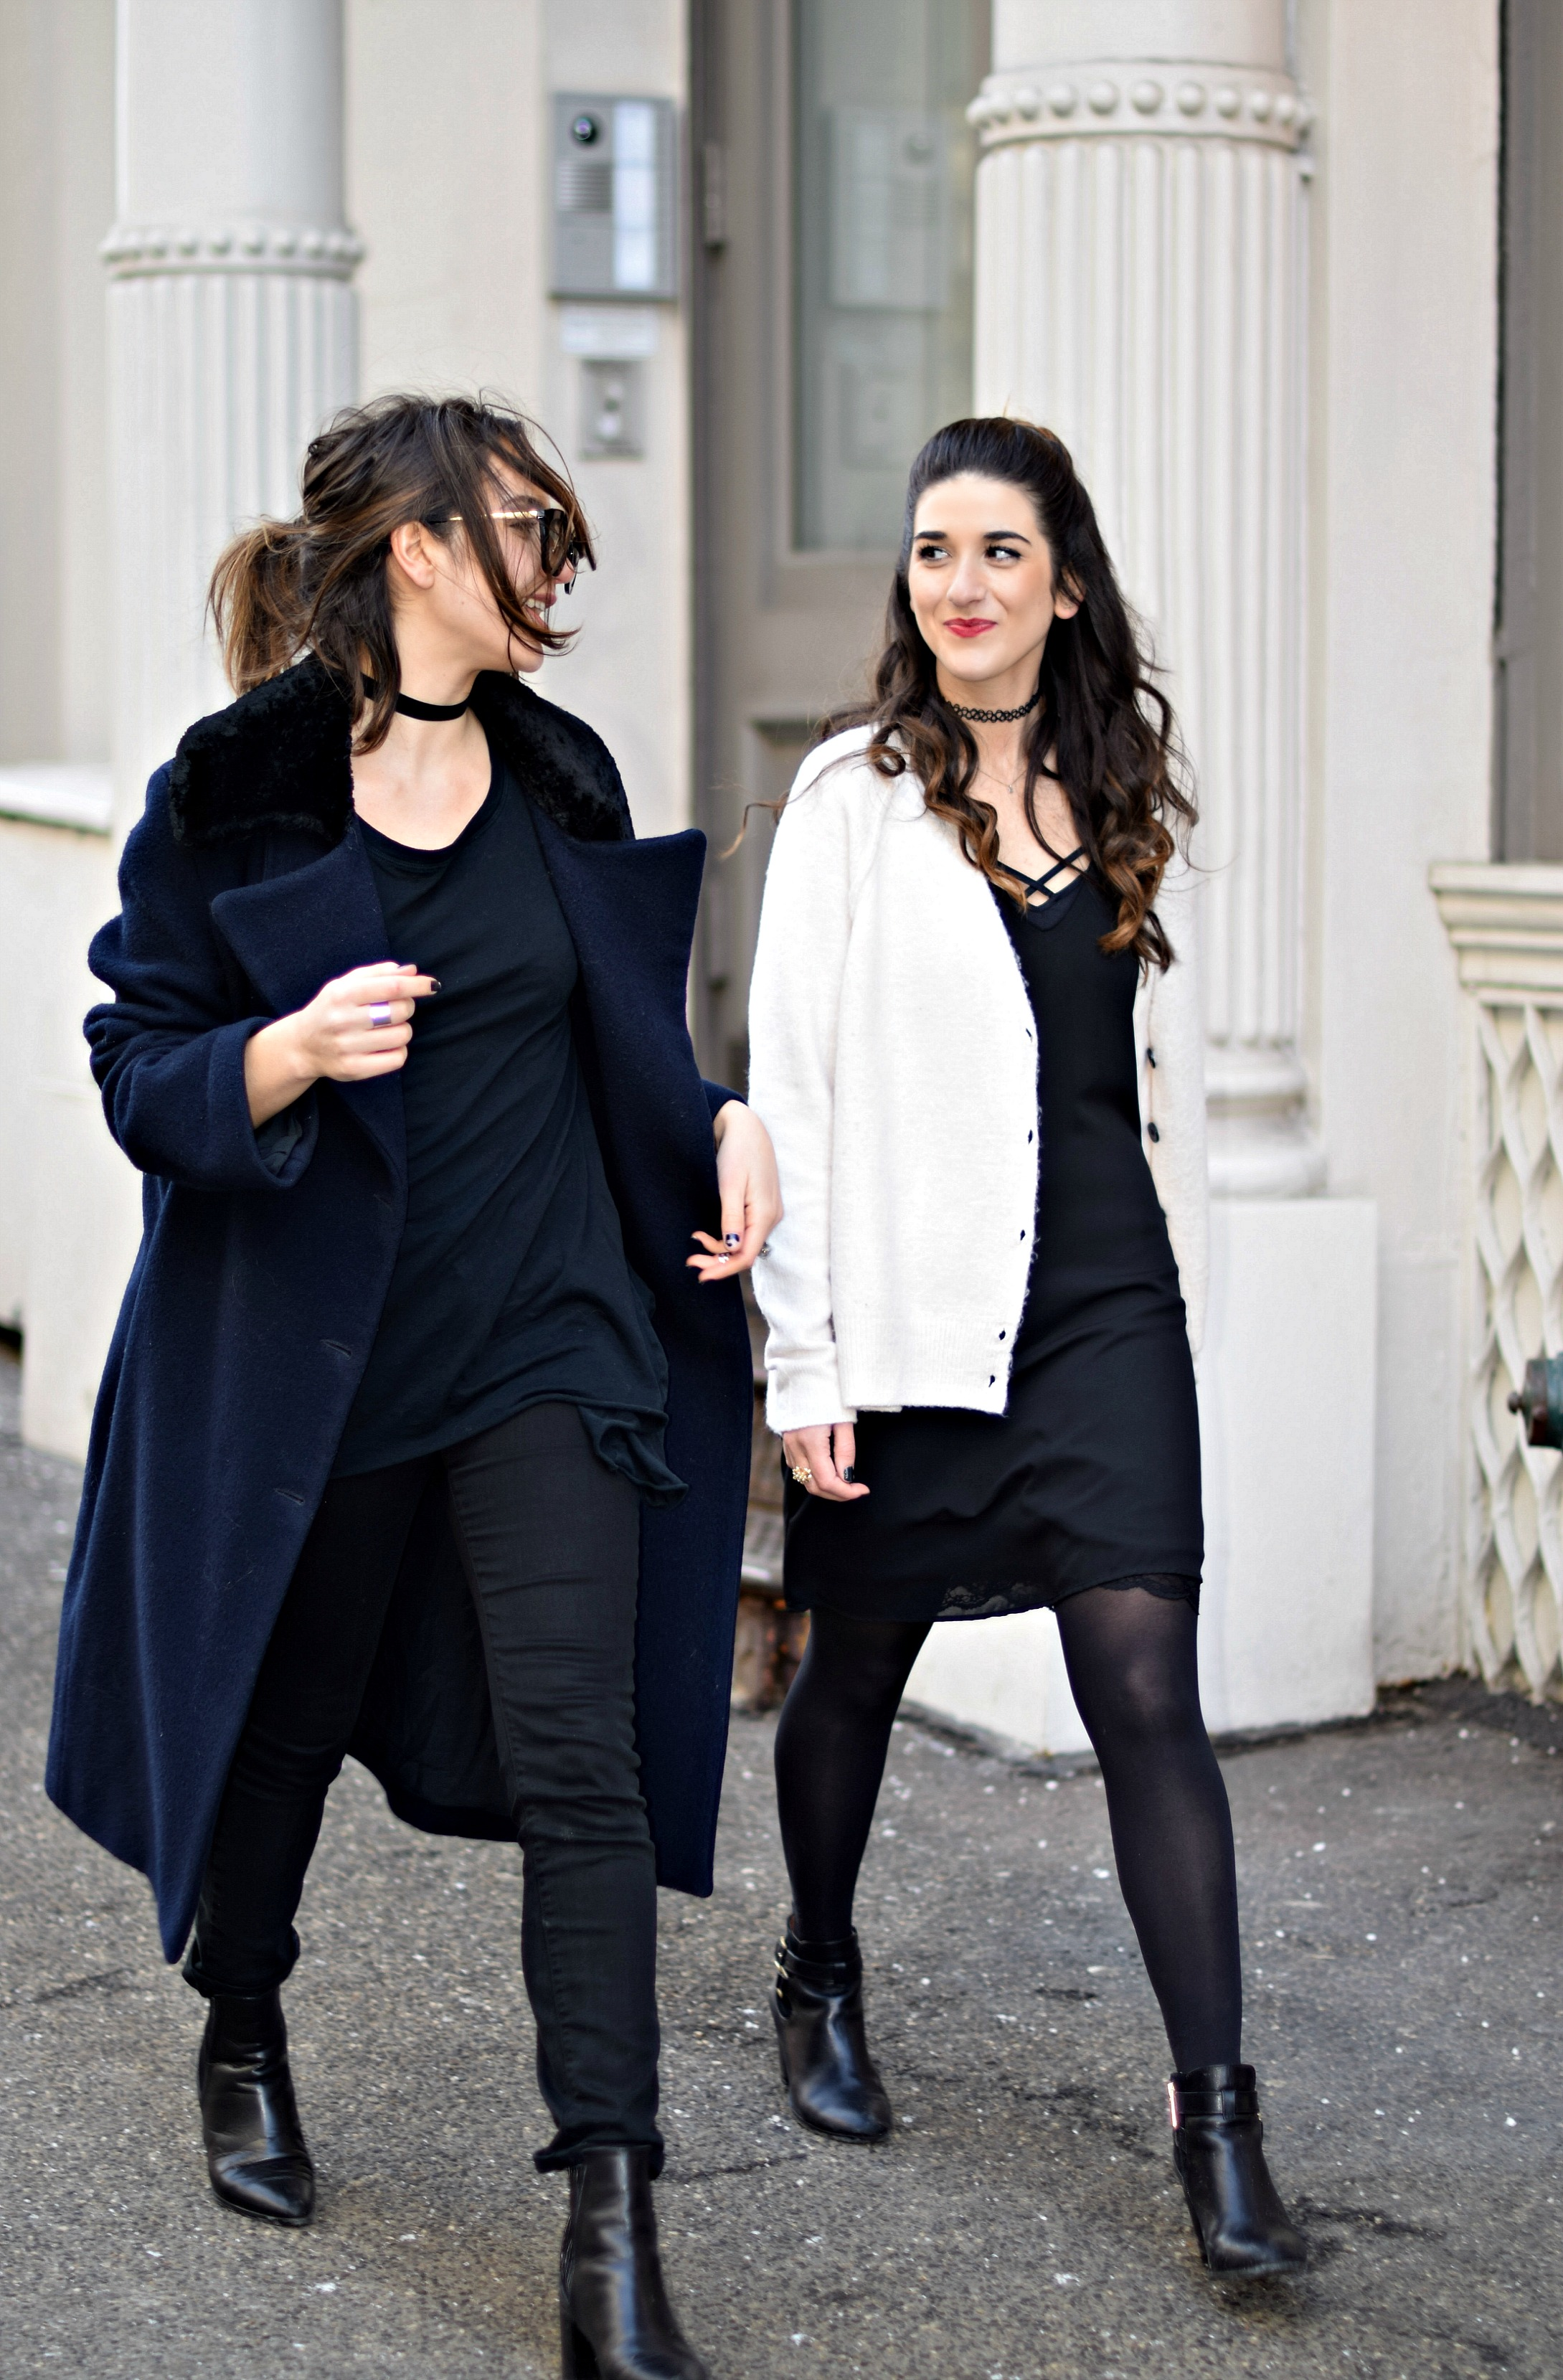 Black Lingerie Dress White Sweater Louboutins & Love Fashion Blog Esther Santer NYC Street Style Outfit OOTD Inspo Bralette Brandy Melville Model Photoshoot Girl Women Brunch Sunglasses Coffee Latte Art Chunky Knits Shoes Booties Tights Choker Winter.jpg